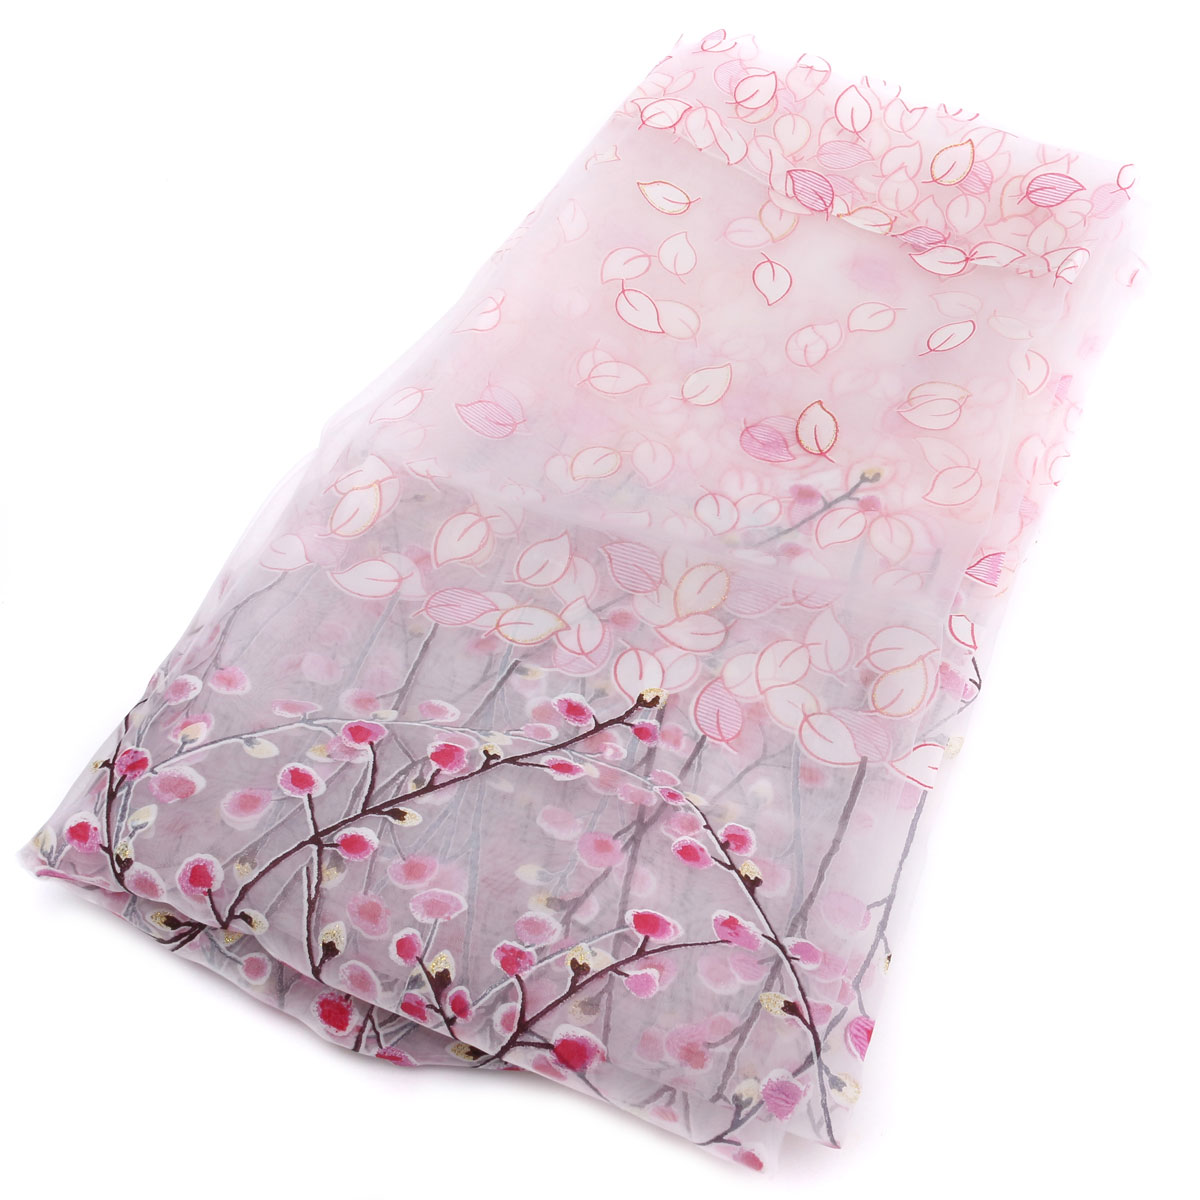 Wintersweet Tree Printed Tulle Voile Window Curtain Organdy Sheer Window Screen